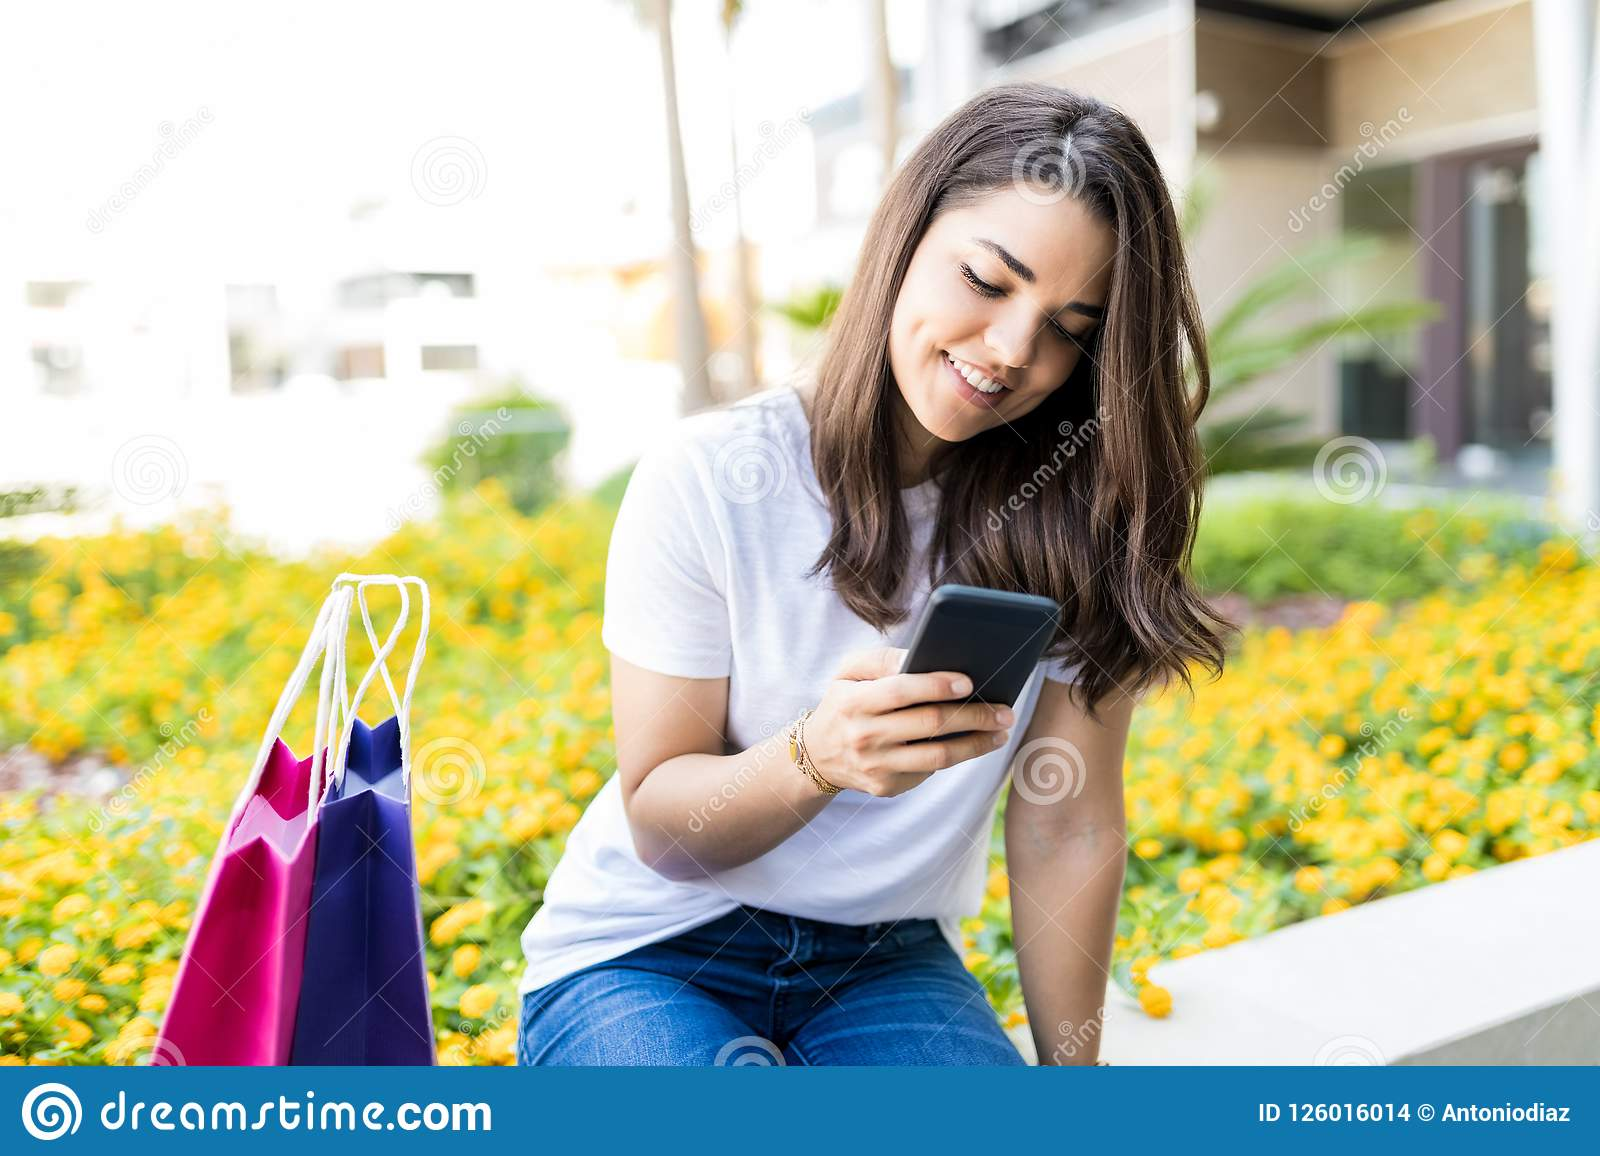 Female Texting On Mobile Phone While Sitting By Shopping Bags